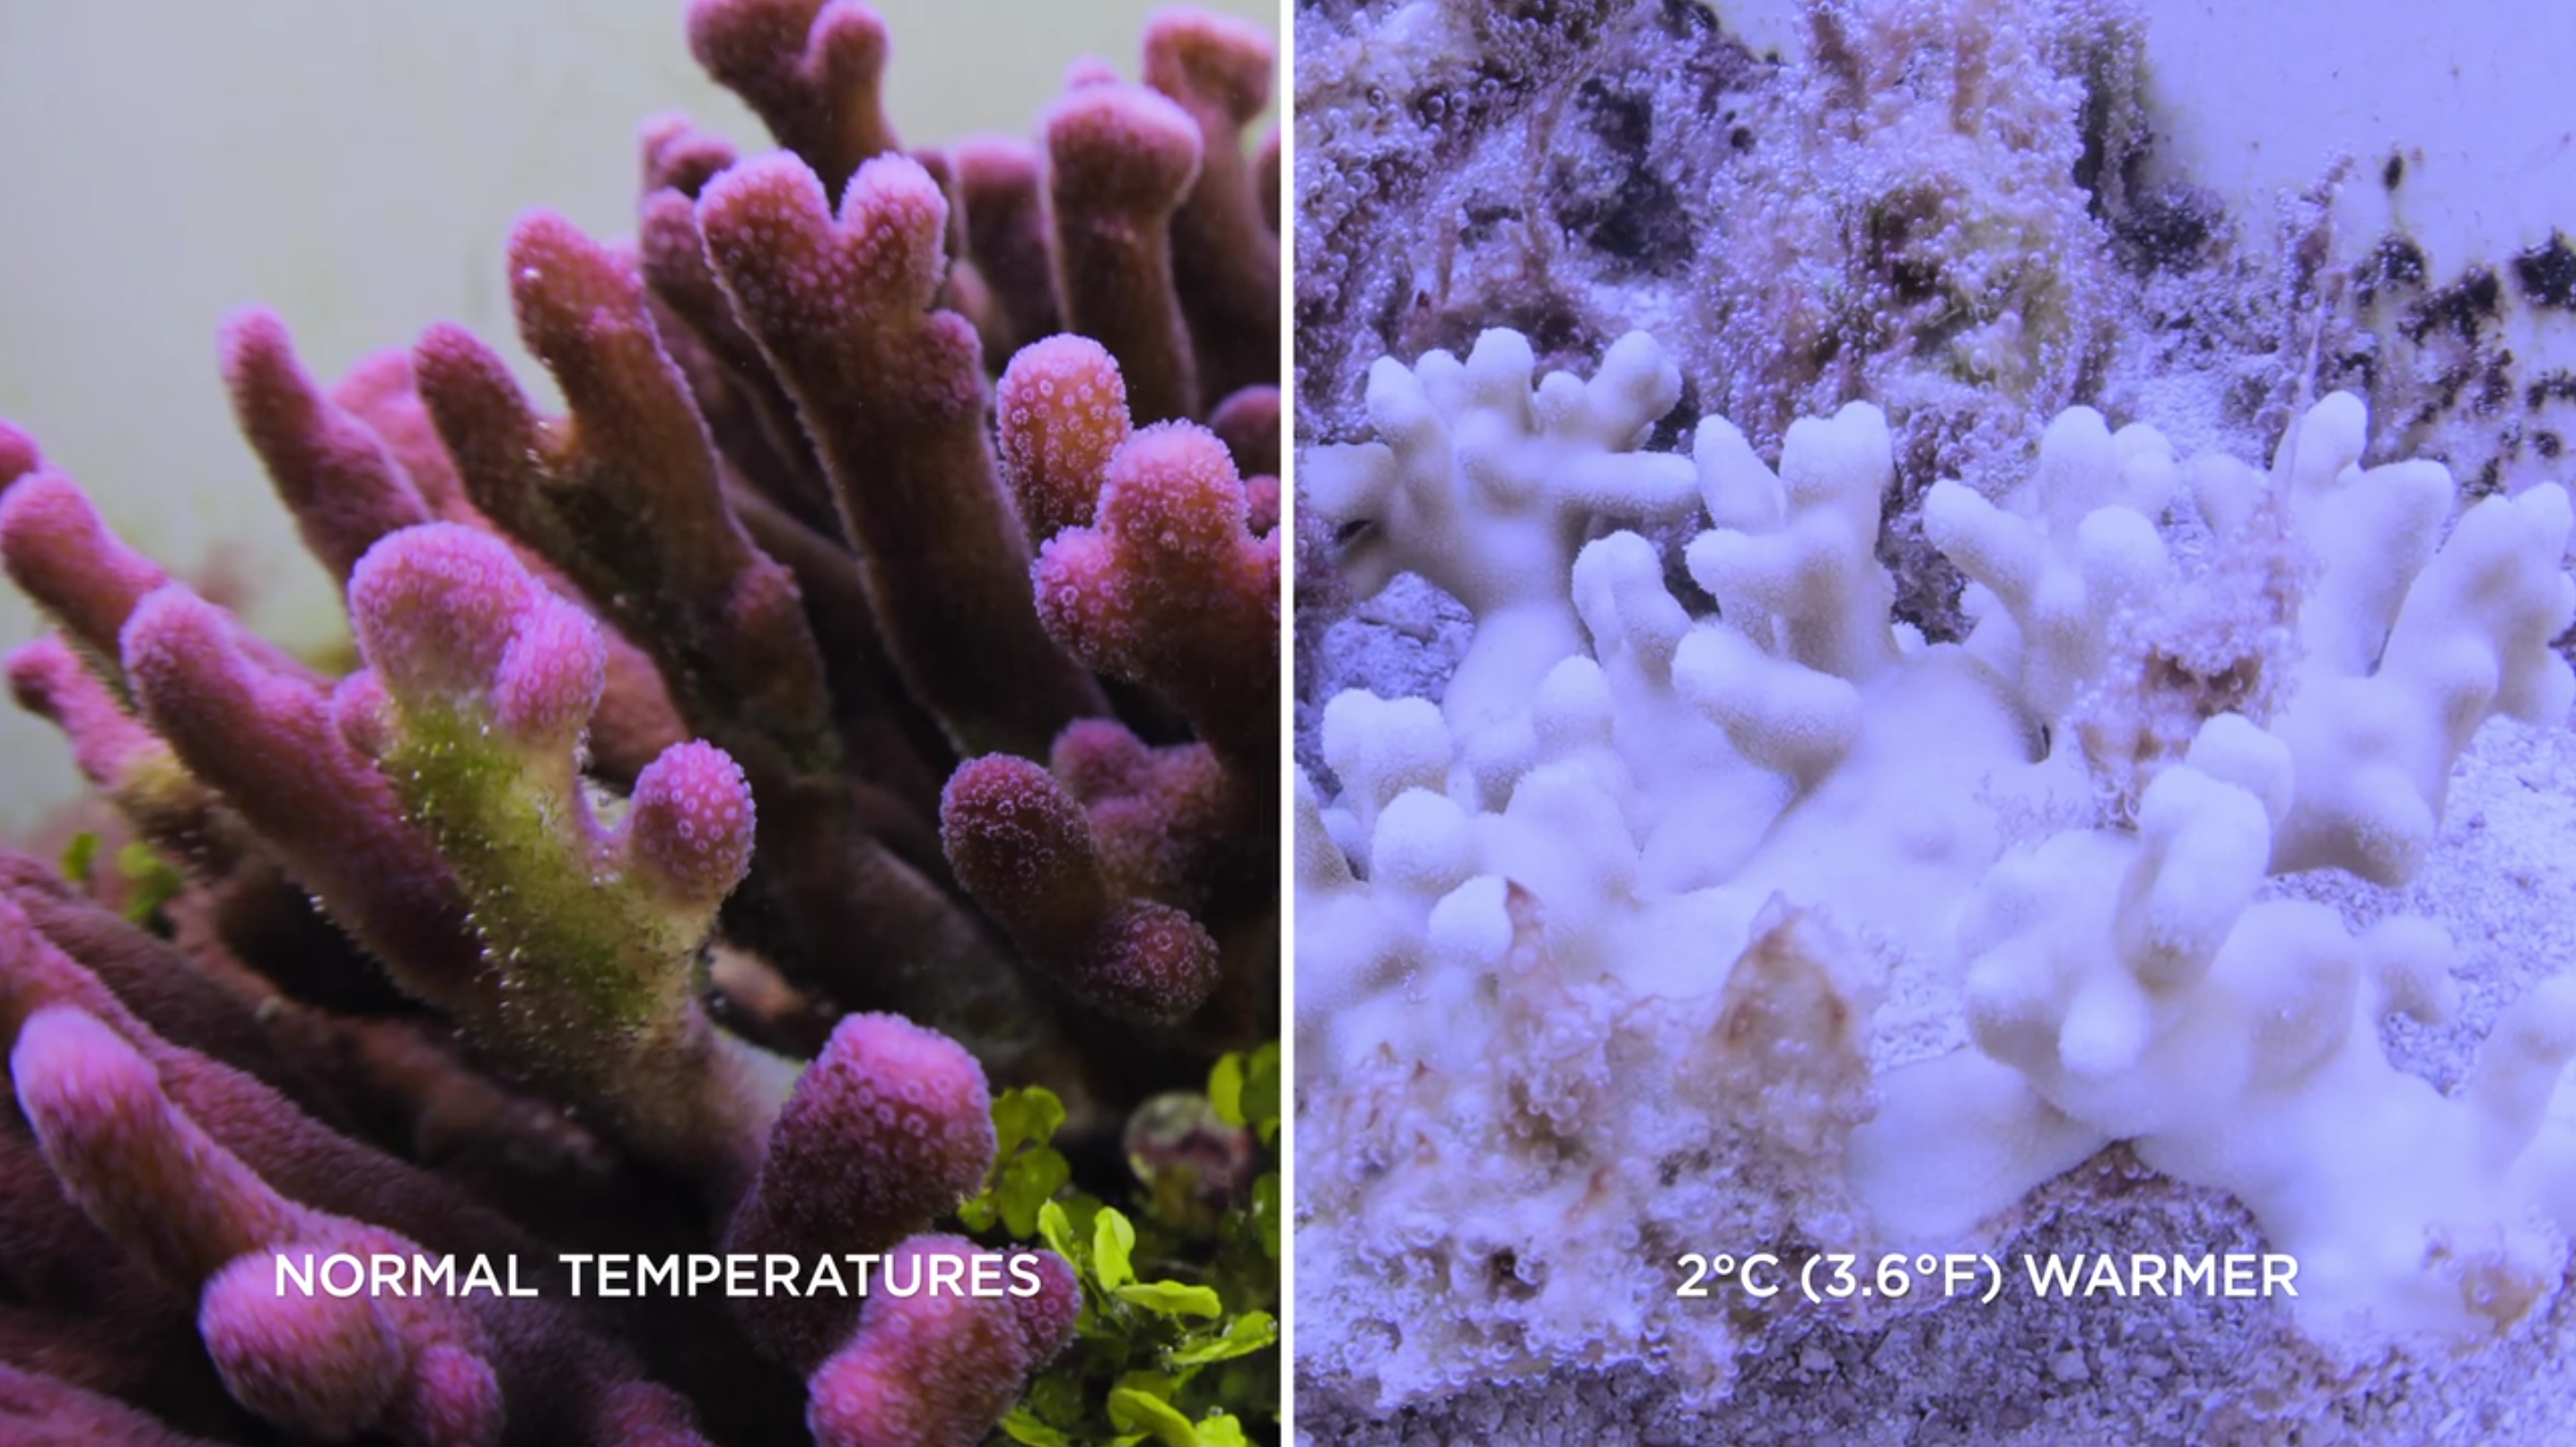 Coral bleaching temperature rise. Healthy coral left, bleached coral right. Image: Chasing Coral